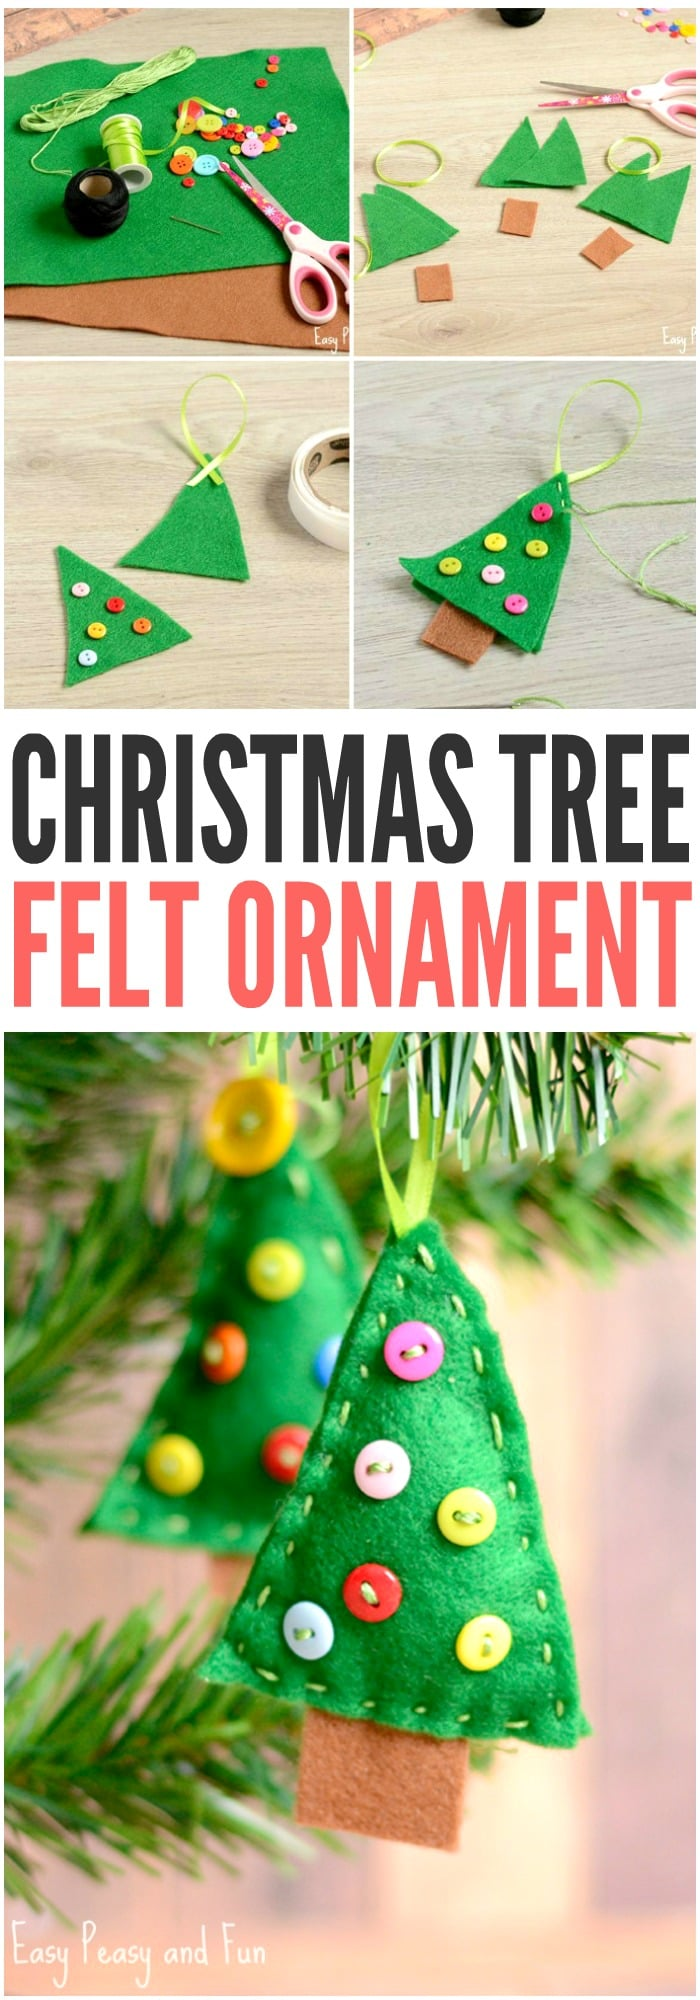 Christmas Tree Felt Ornament Craft for Kids to Make